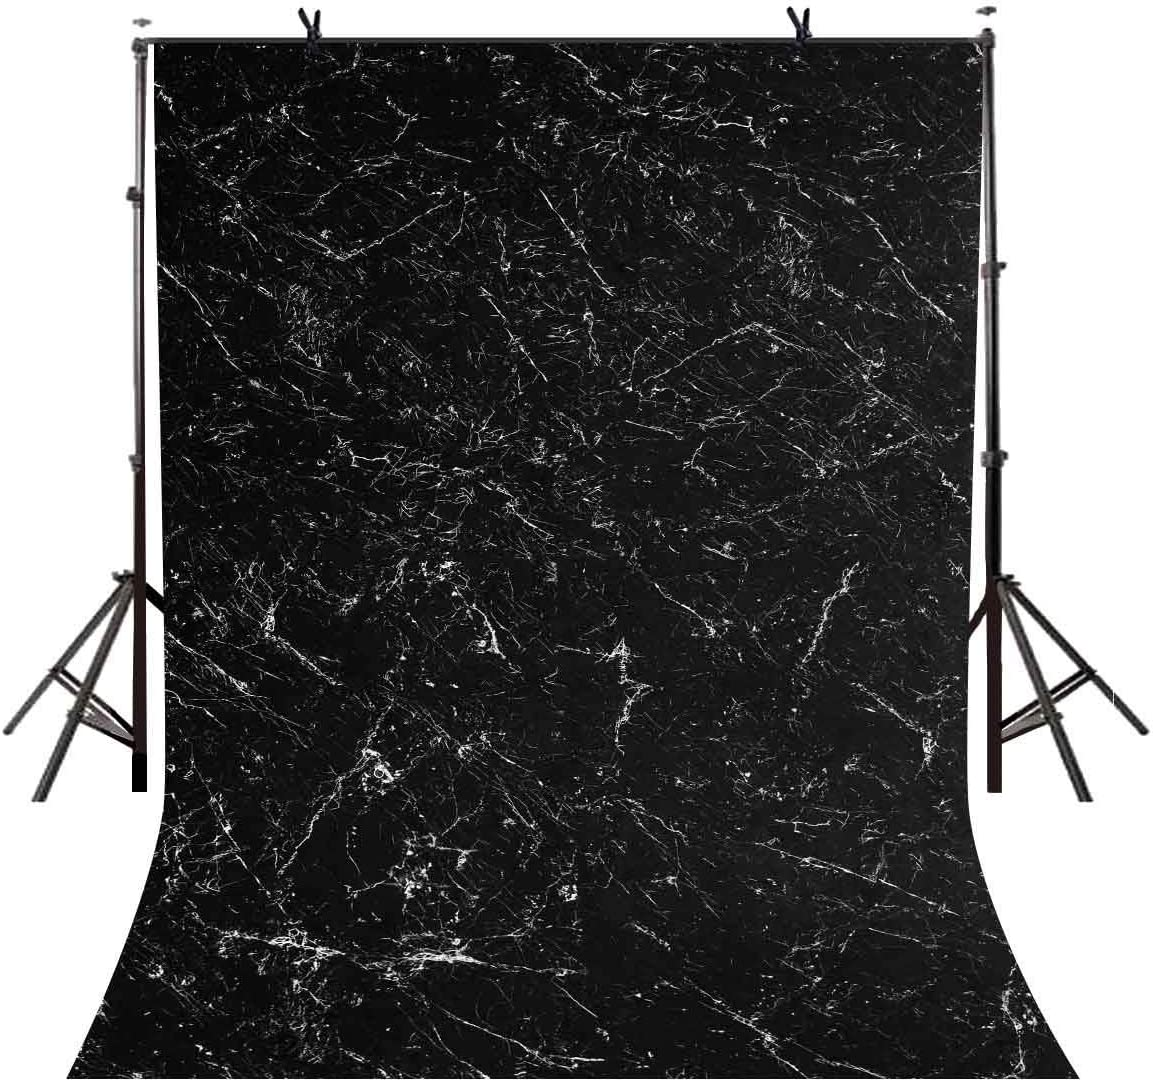 GoEoo 5x7ft Marble Texture Backdrop Minimalistic Black Marble Texture Photographic Background and Studio Photography Backdrop Props LYGE747